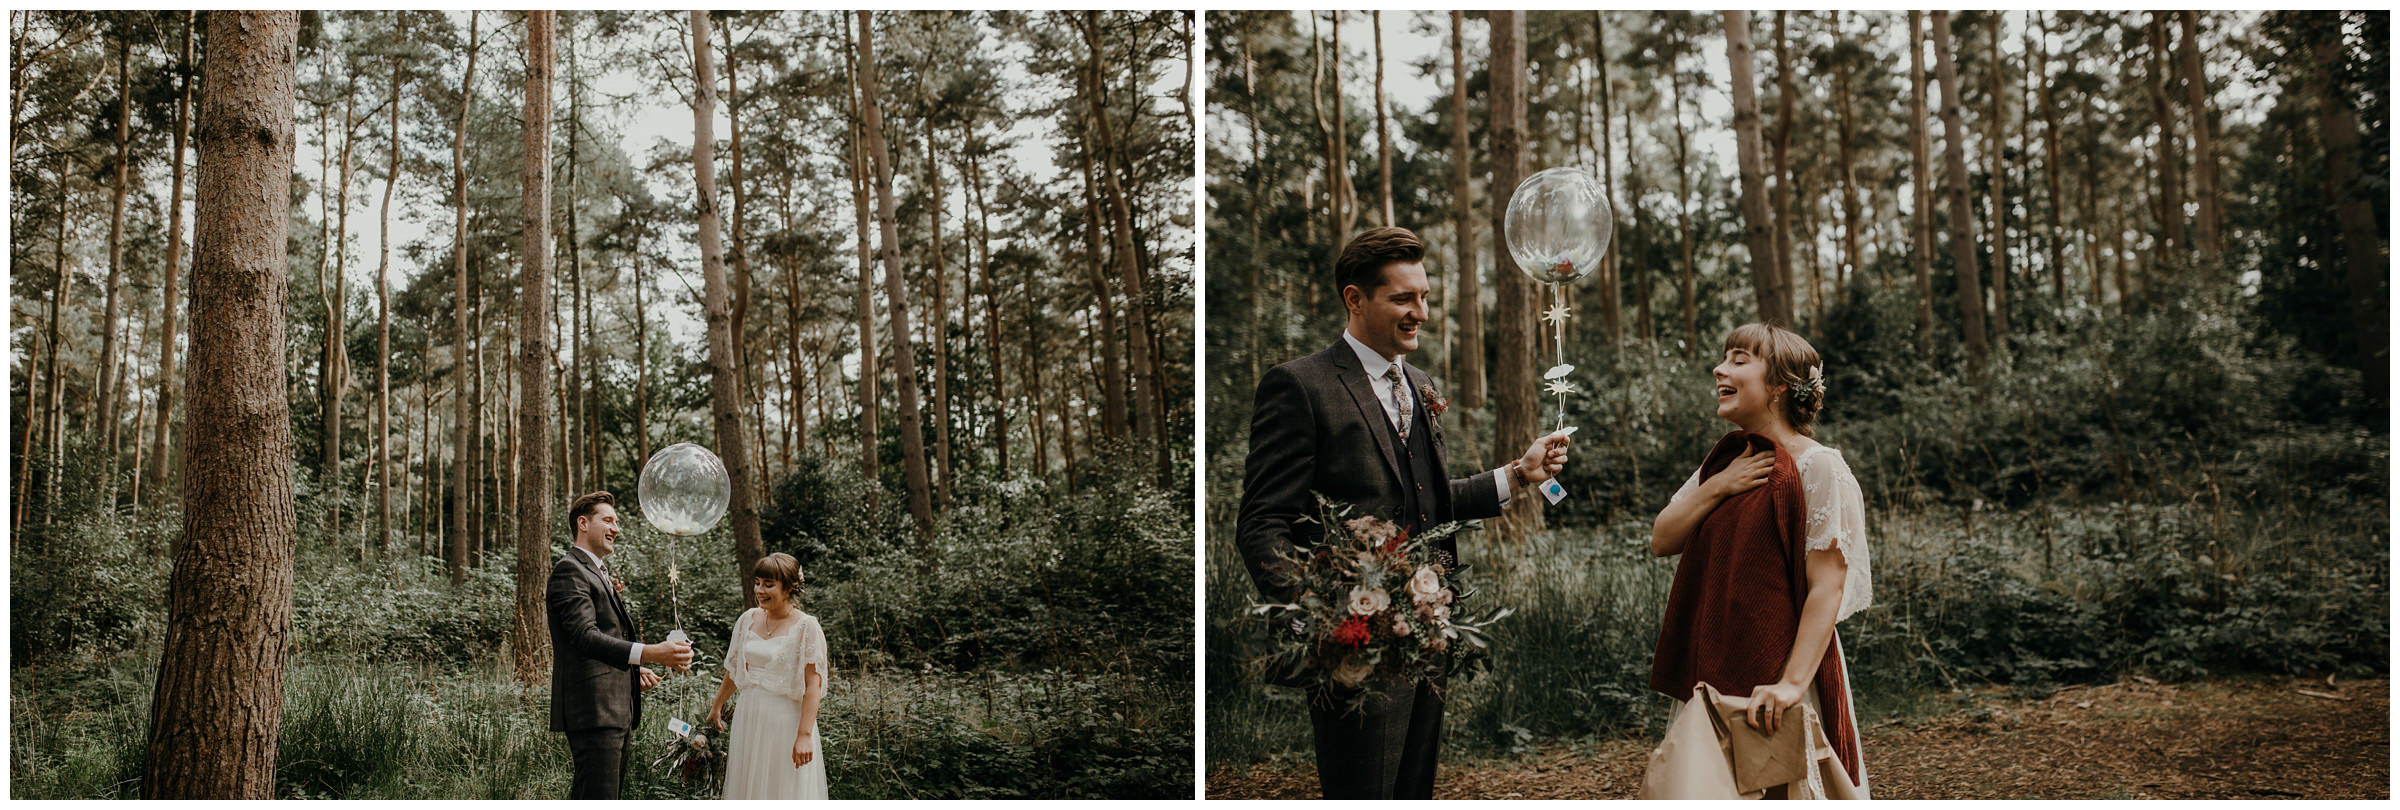 bride gives groom balloon gift at first look